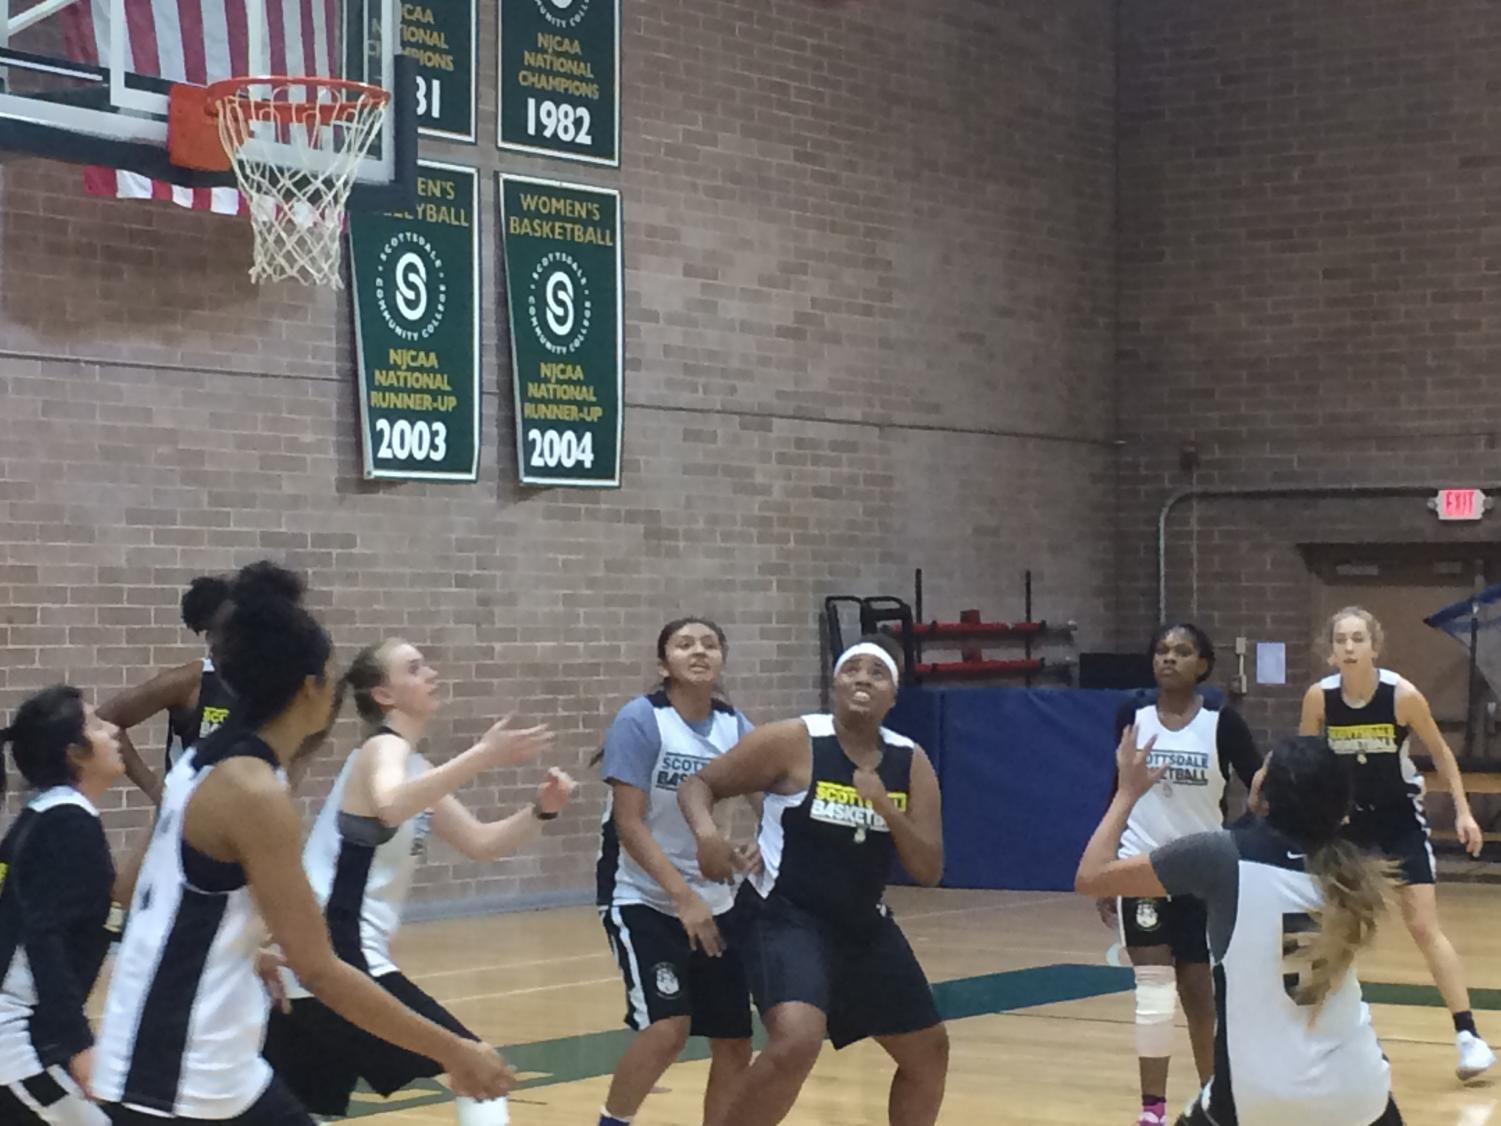 Artichoke players await a rebound during practice.